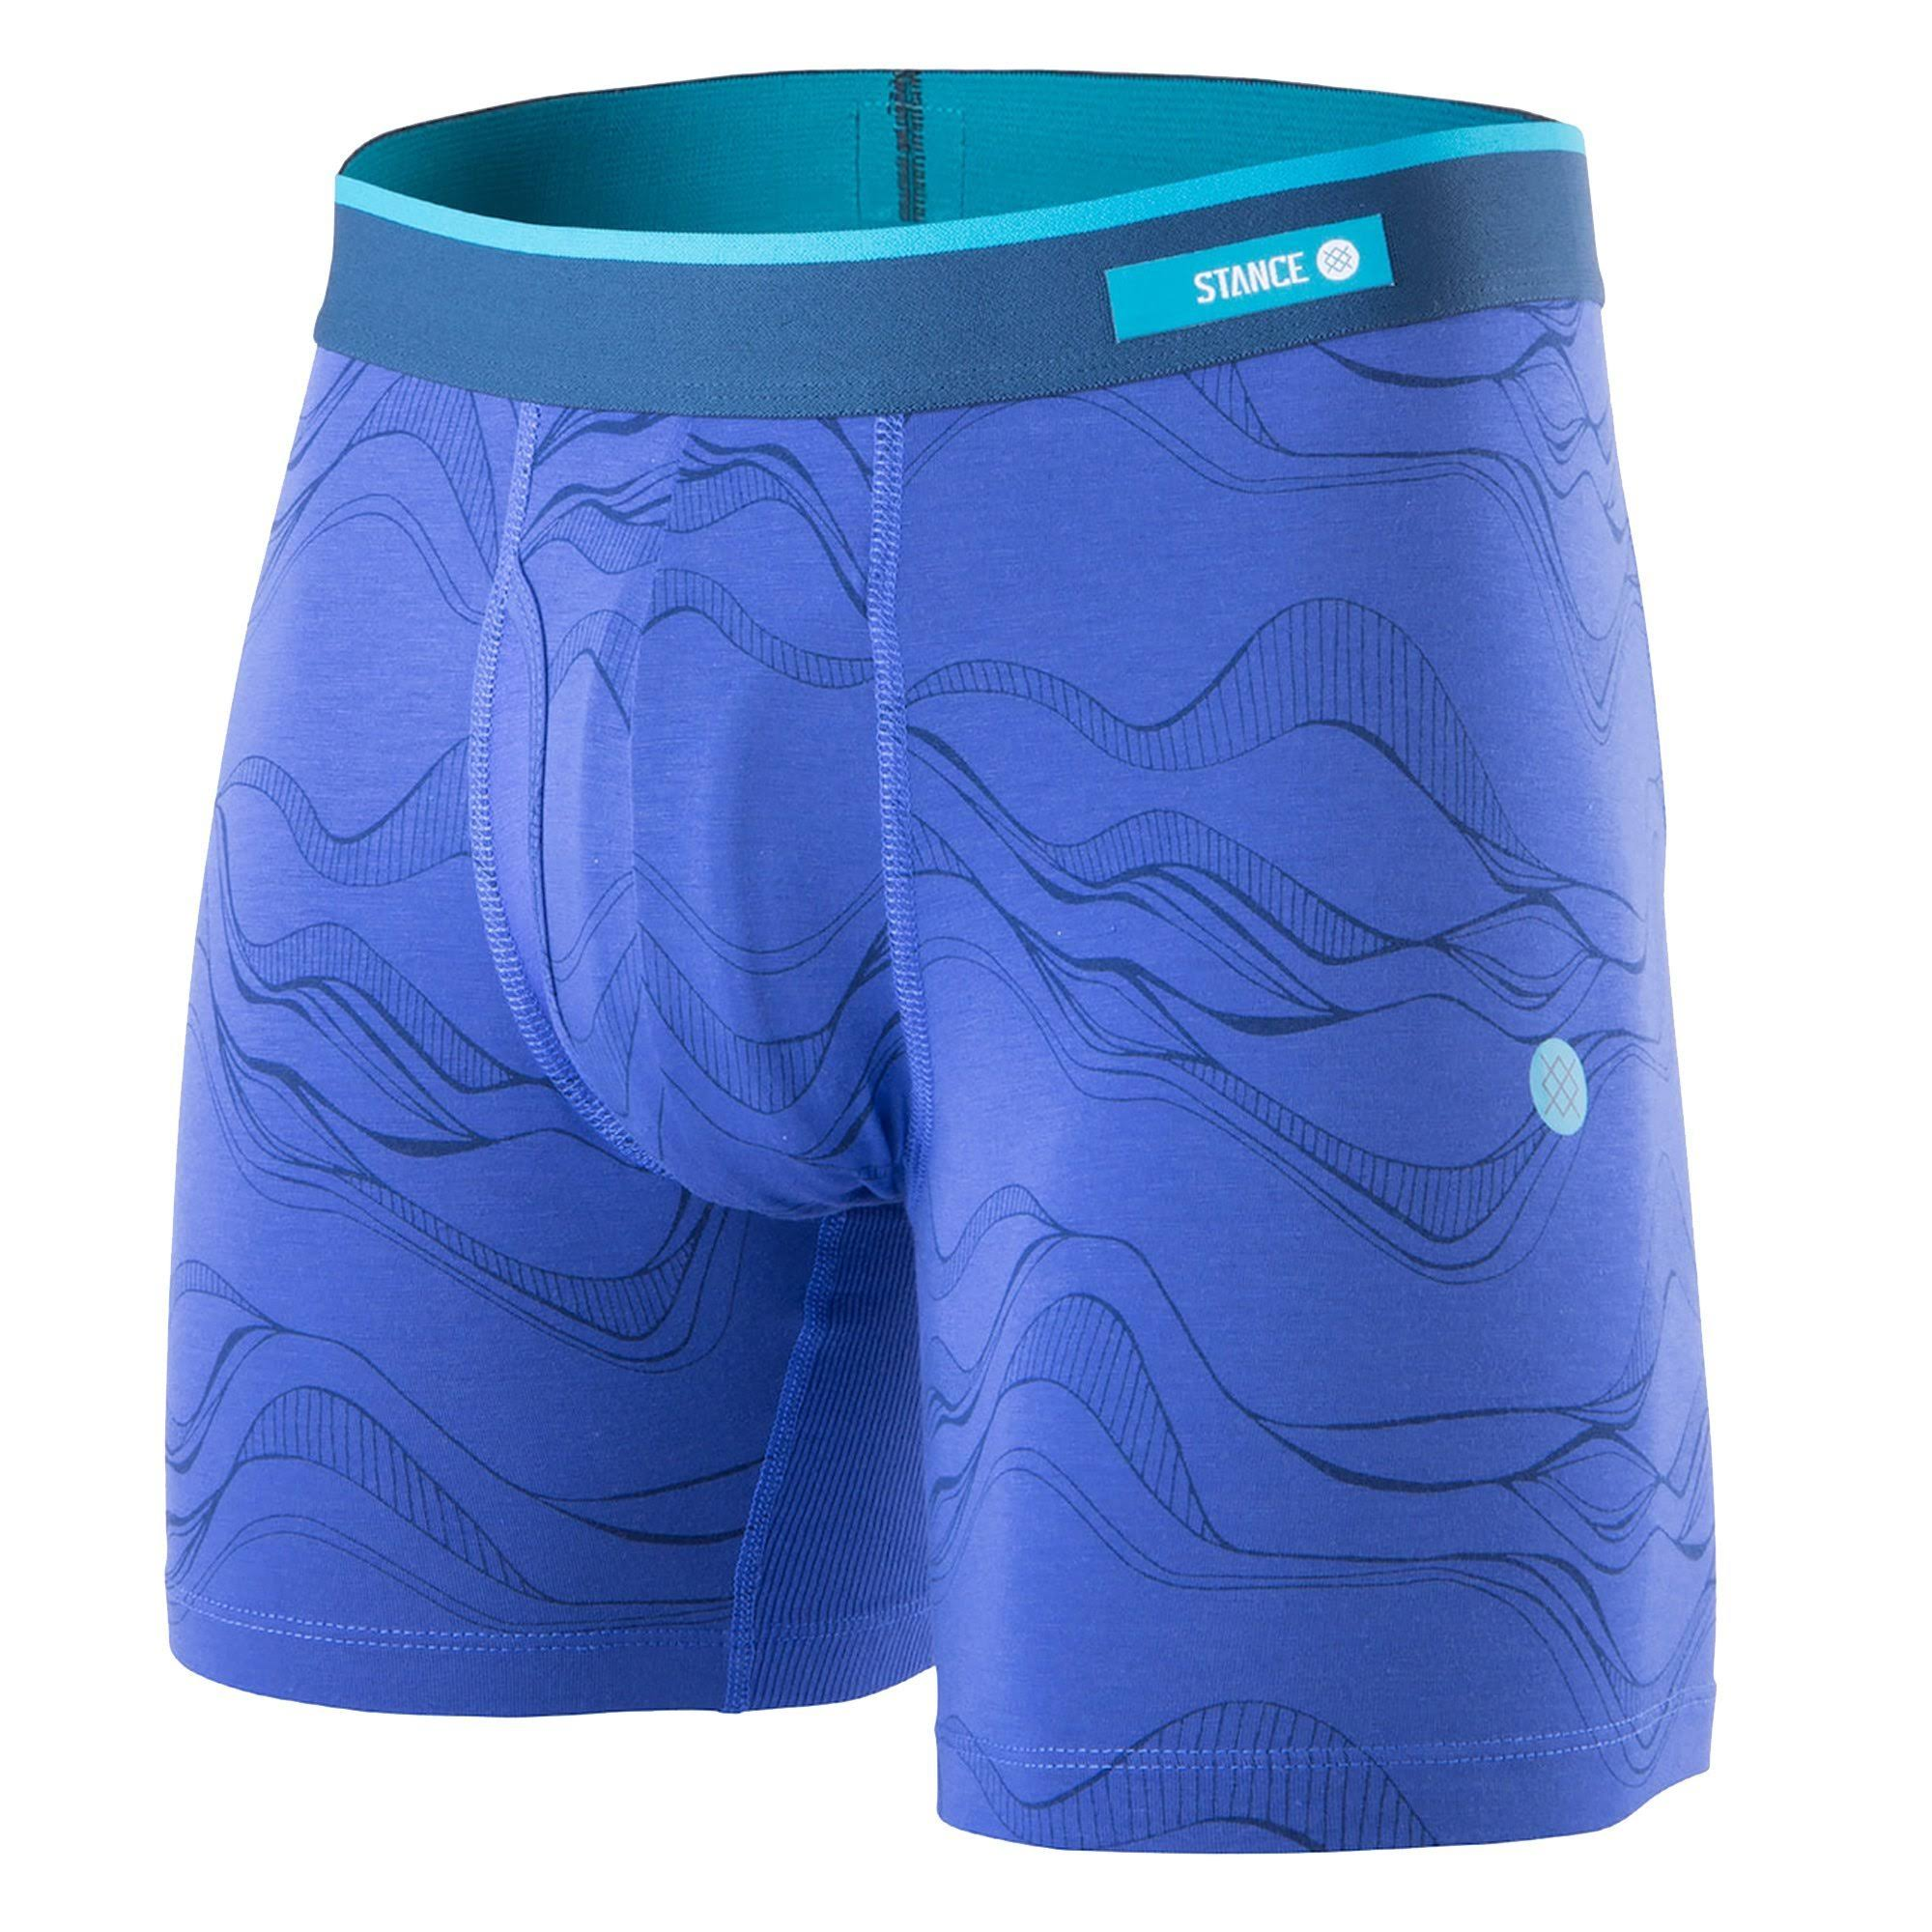 Stance Underwear String Theory Boxer Brief, Blue / M